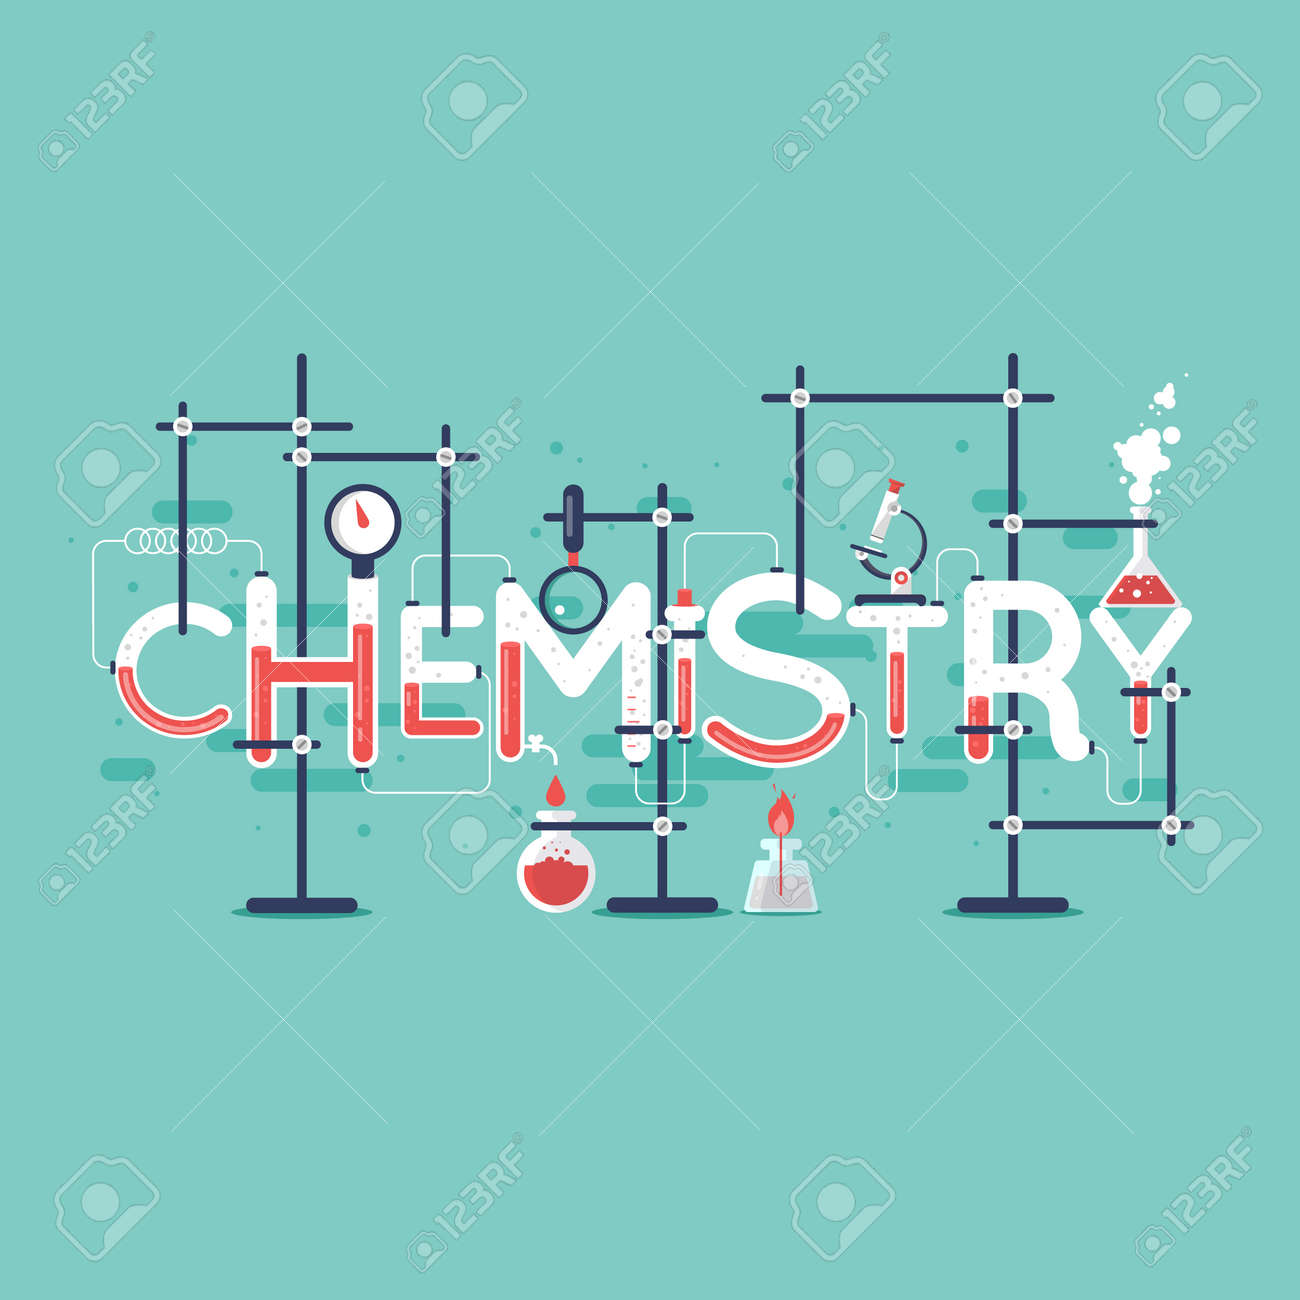 Poster design vector graphics - Chemistry Info Graphic Typographic Poster Banner Flat Design Vector Illustration Stock